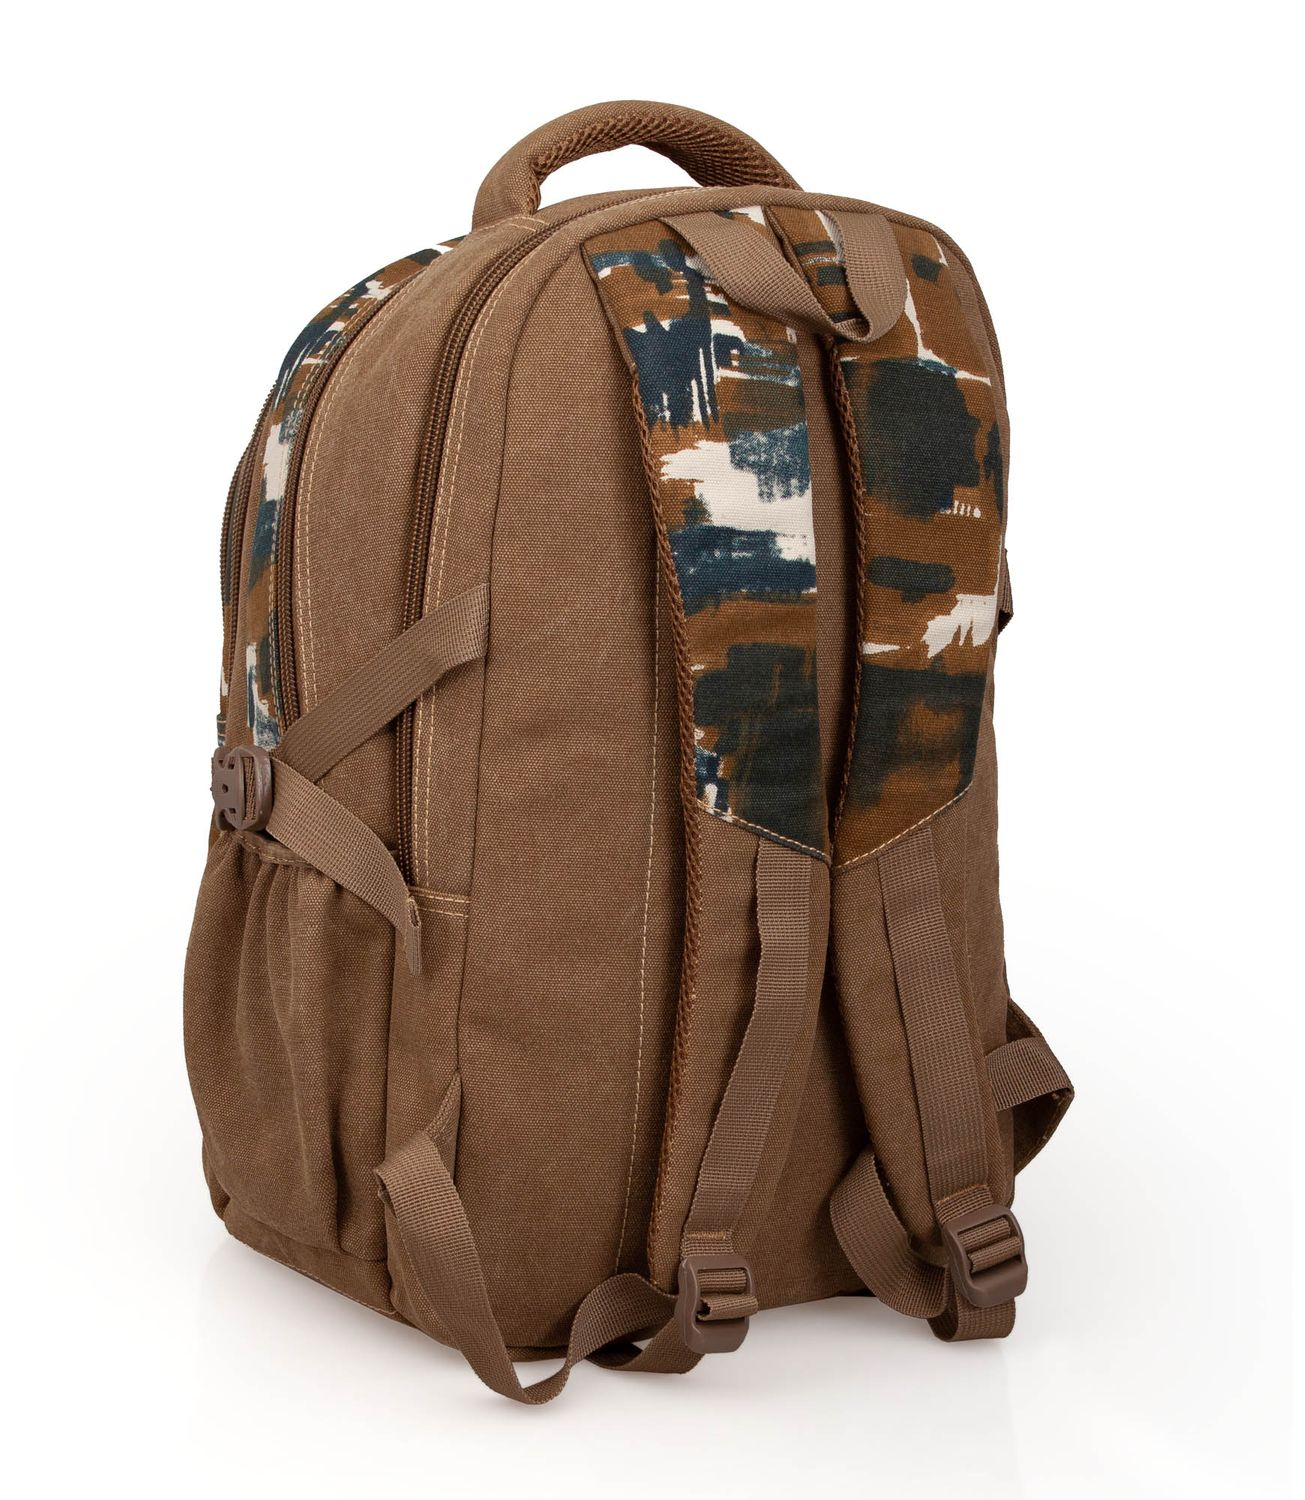 Backpack Rucksack EL CHARRO MONTANA Brown – image 2